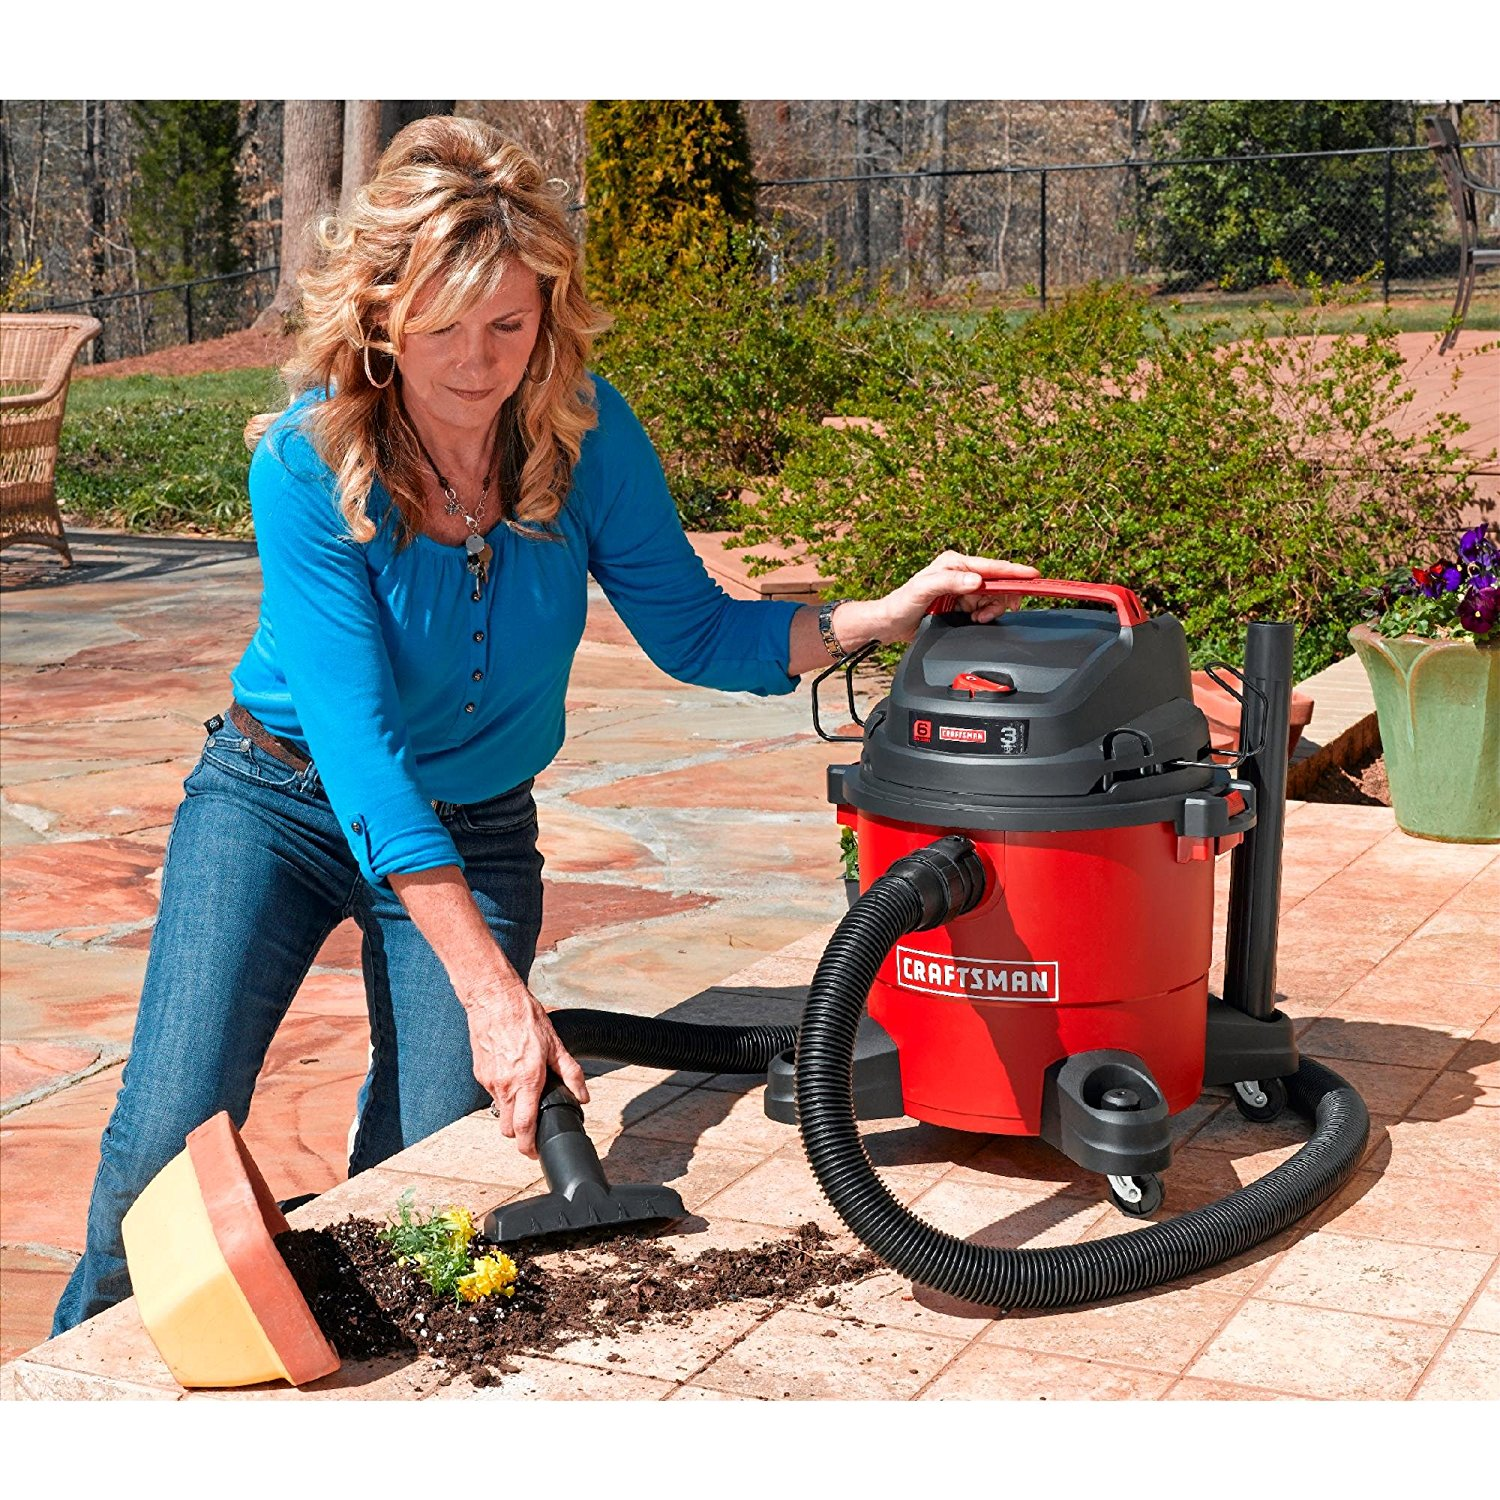 Best Shop Vac Under 100 In 2018 2019 Best Tools For The